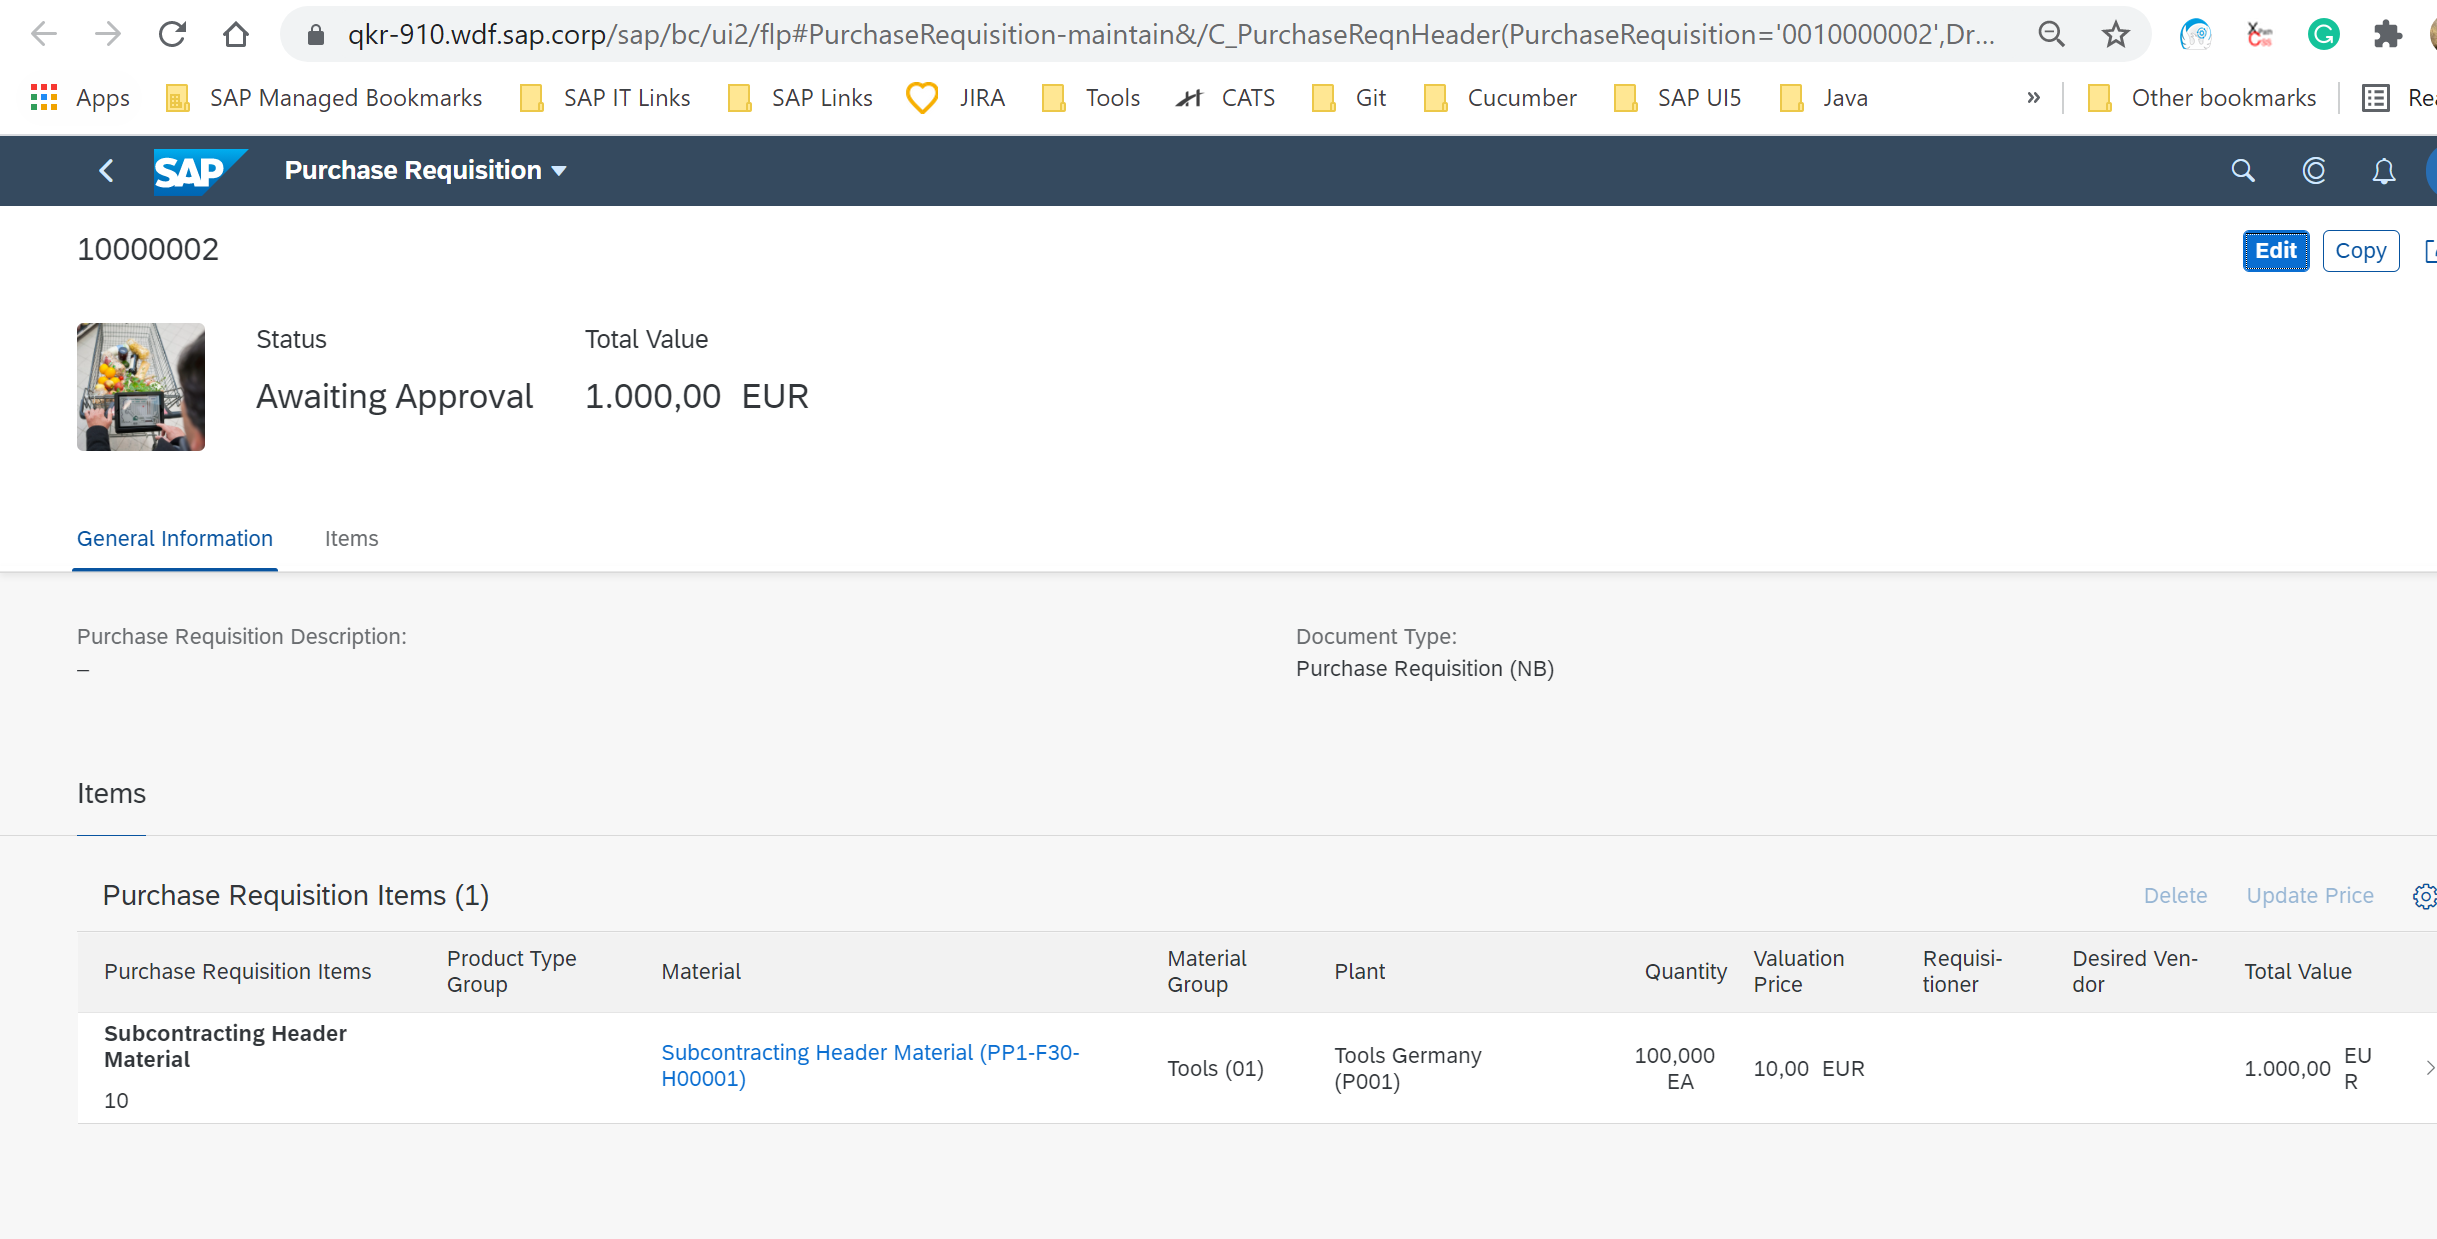 Purchase%20Requisition%20details%20as%20seen%20in%20Manage%20Purchase%20Requisitions%20-%20Professional%20app%20at%20the%20connected%20system%20after%20Fiori%20navigation